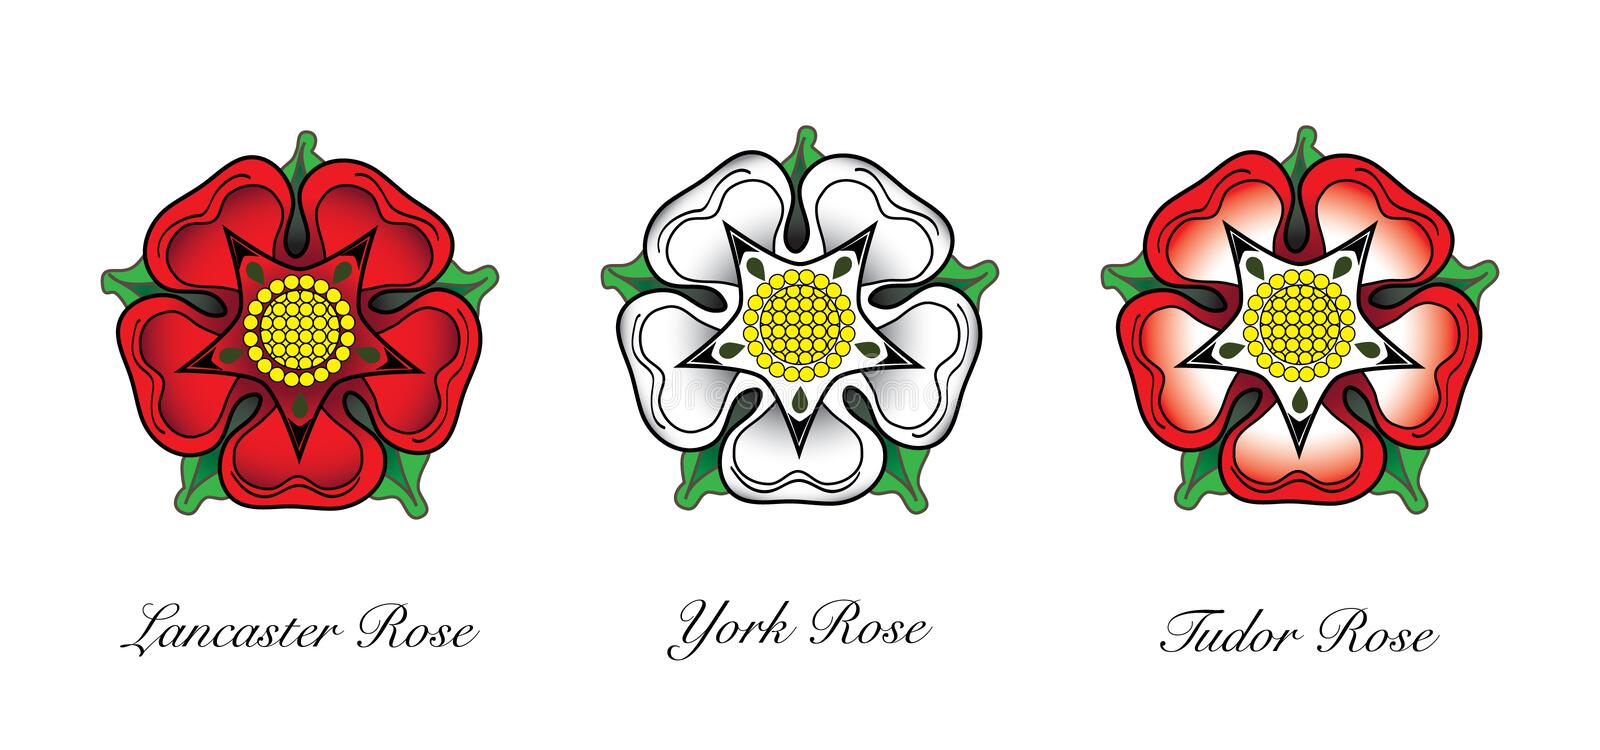 English Rose Emblem. Representaions or english Rose emlems. Following the War of the Roses, the red rose of the house of Lancaster and the White rose of the